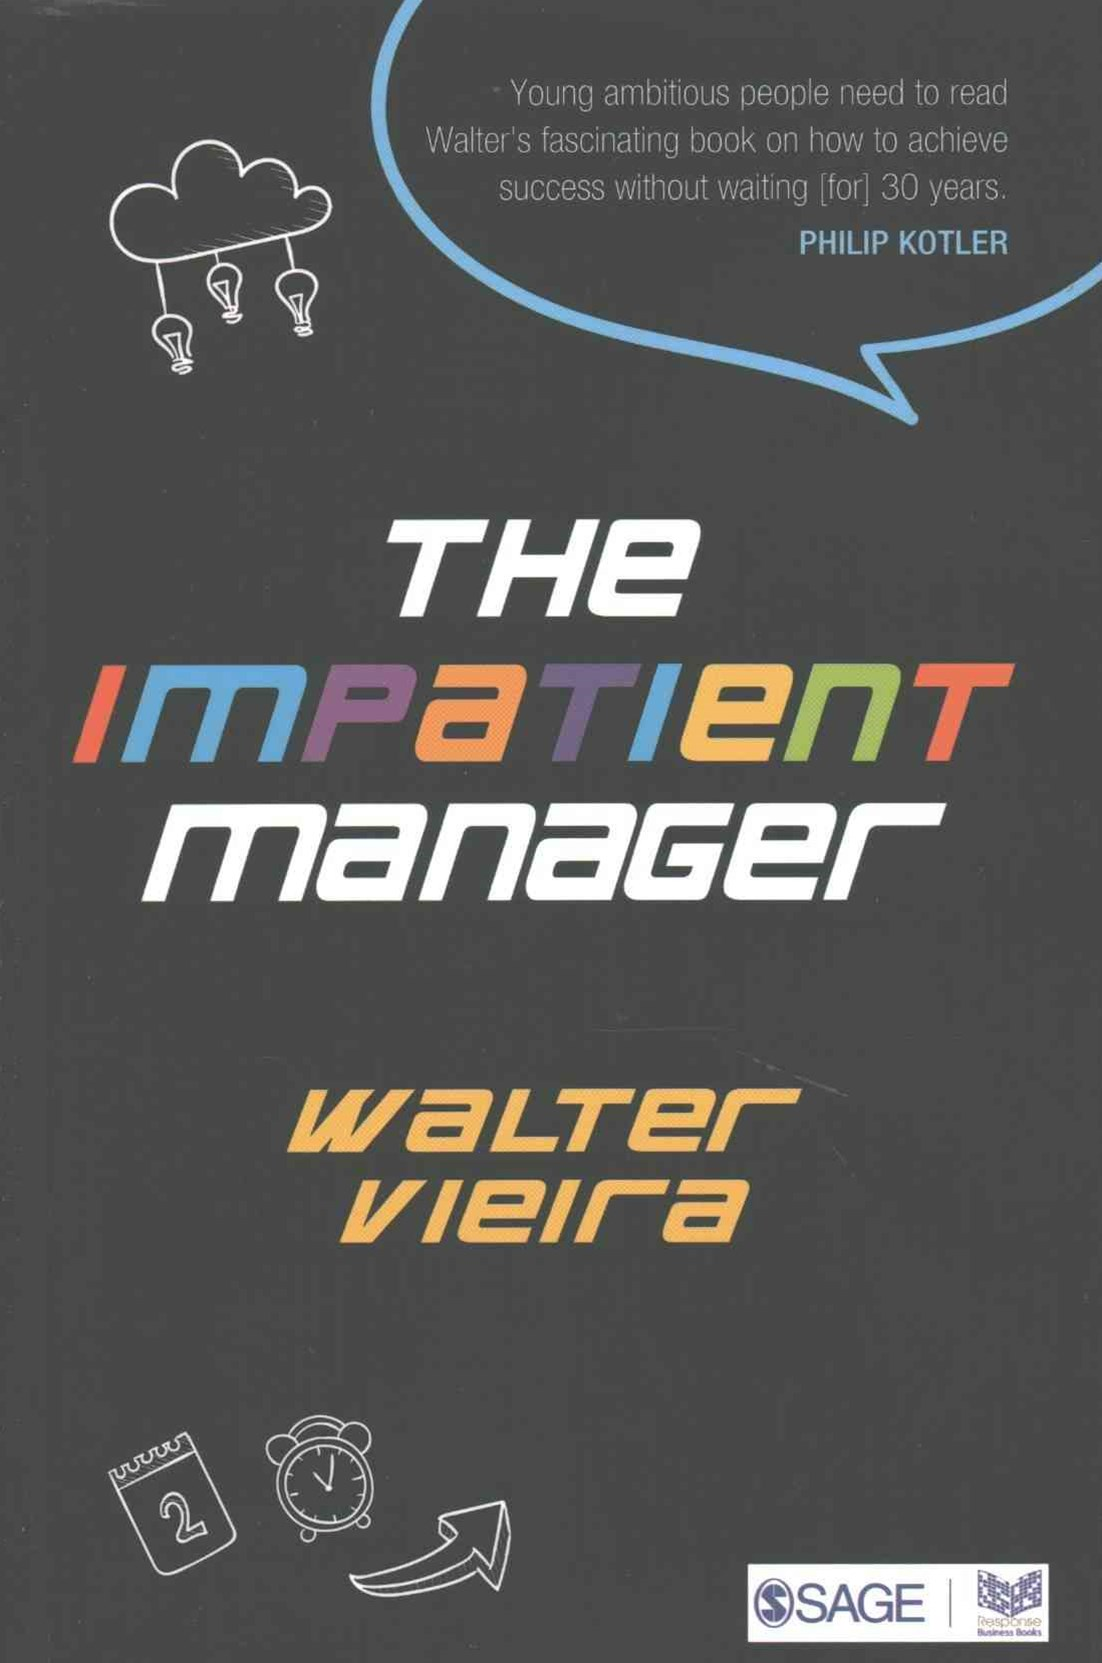 The Impatient Manager